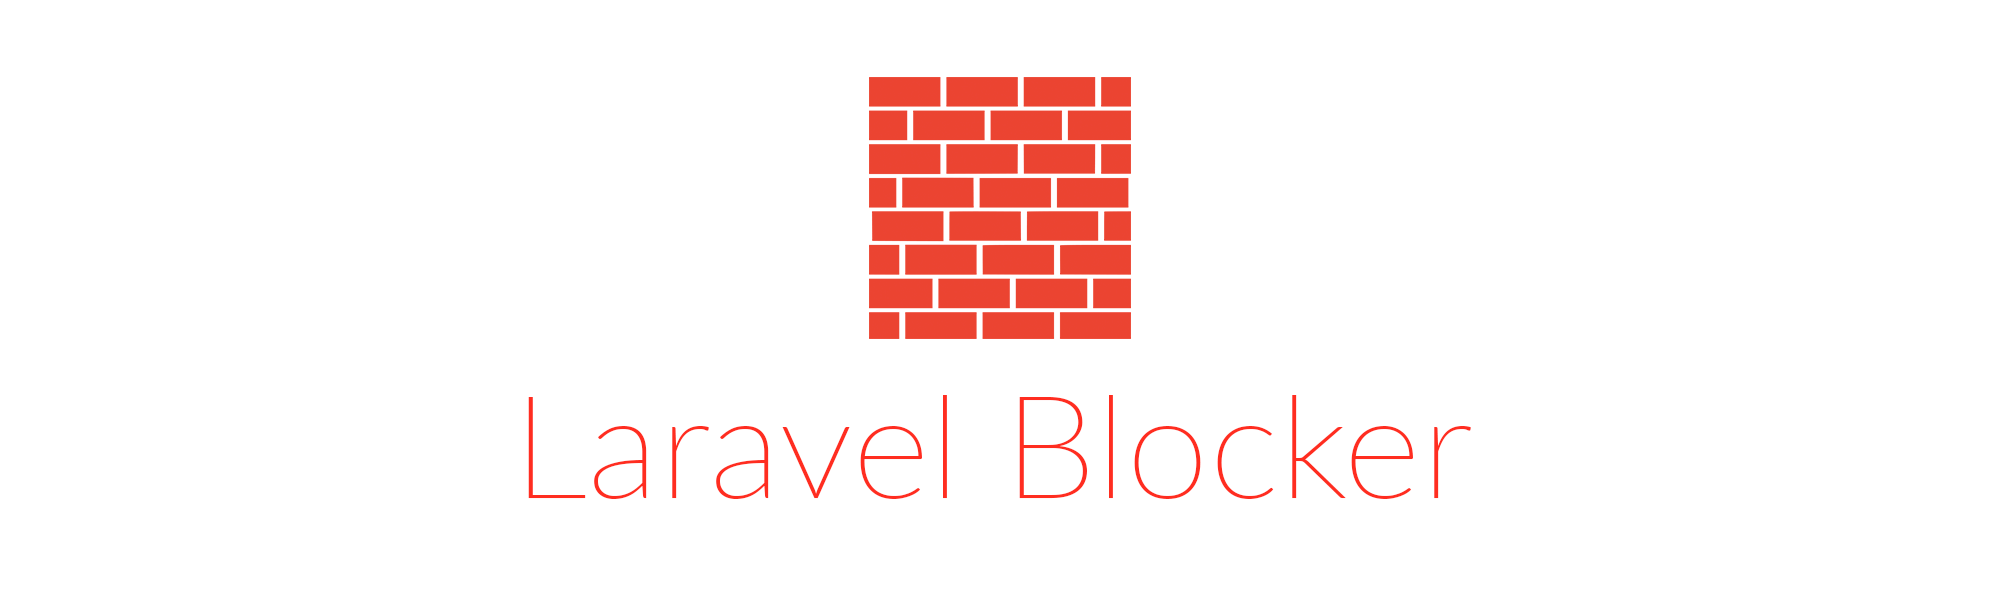 Laravel Blocker